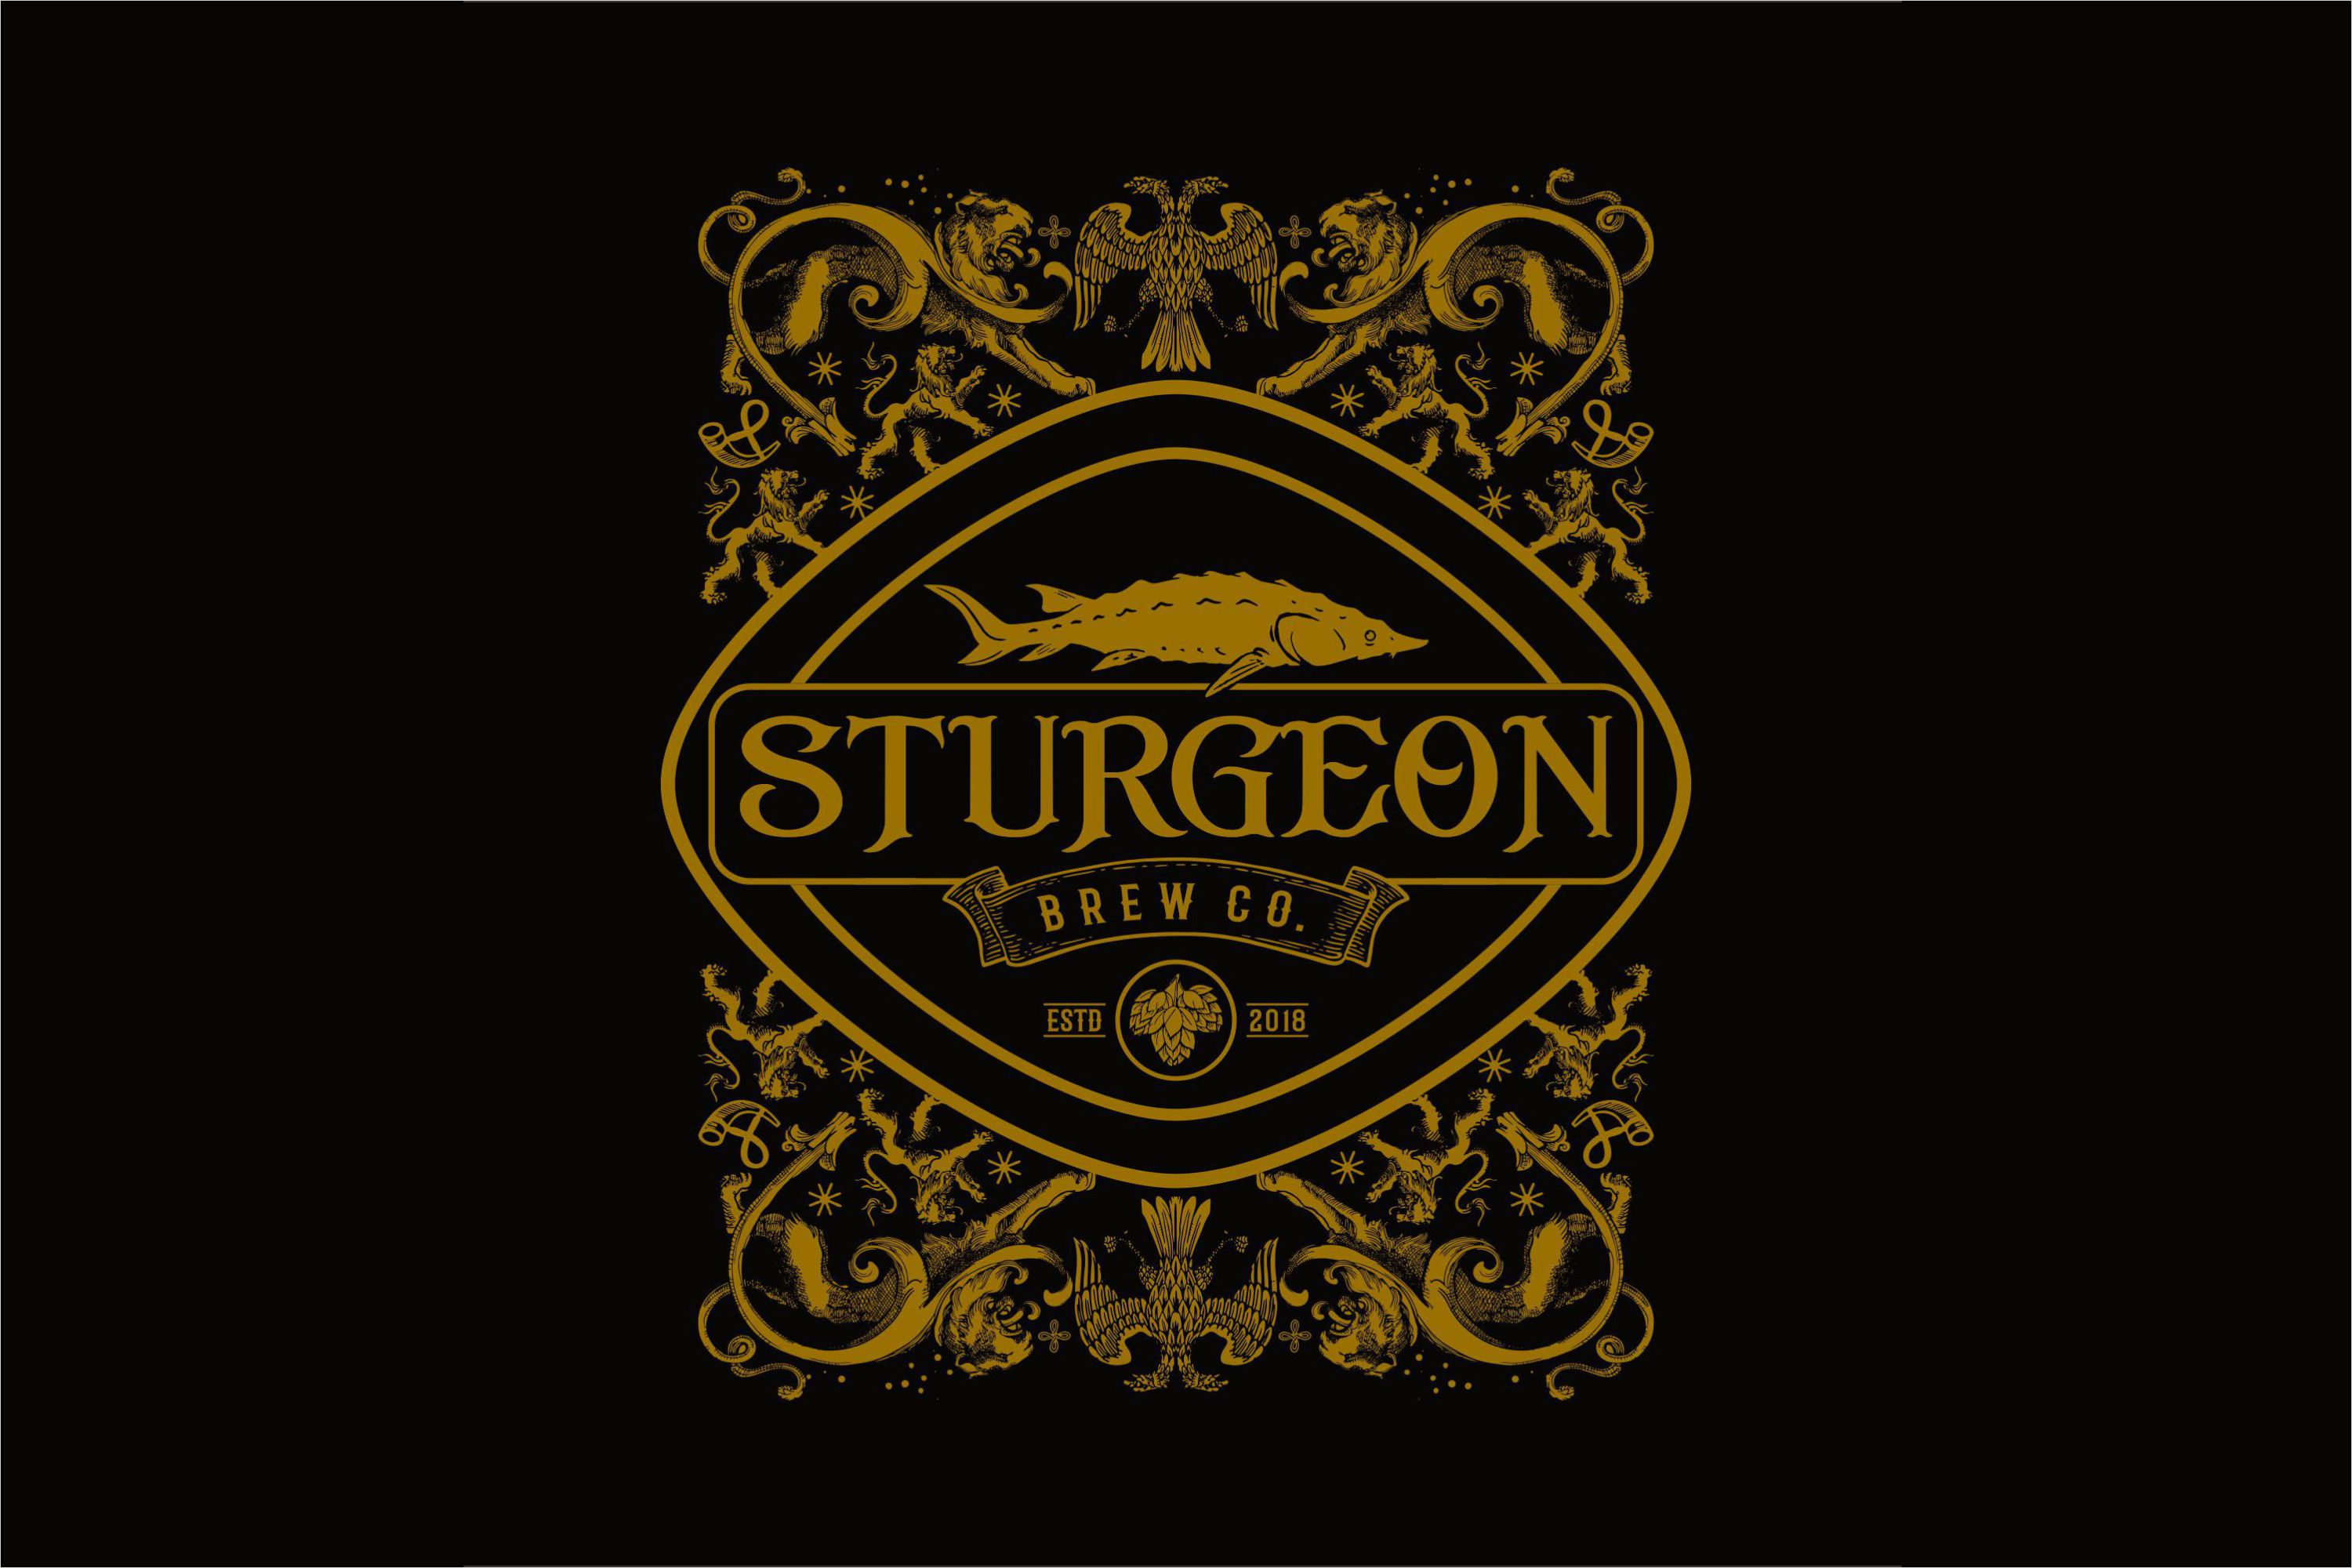 Sturgeon Vintage Logo Pack example image 3